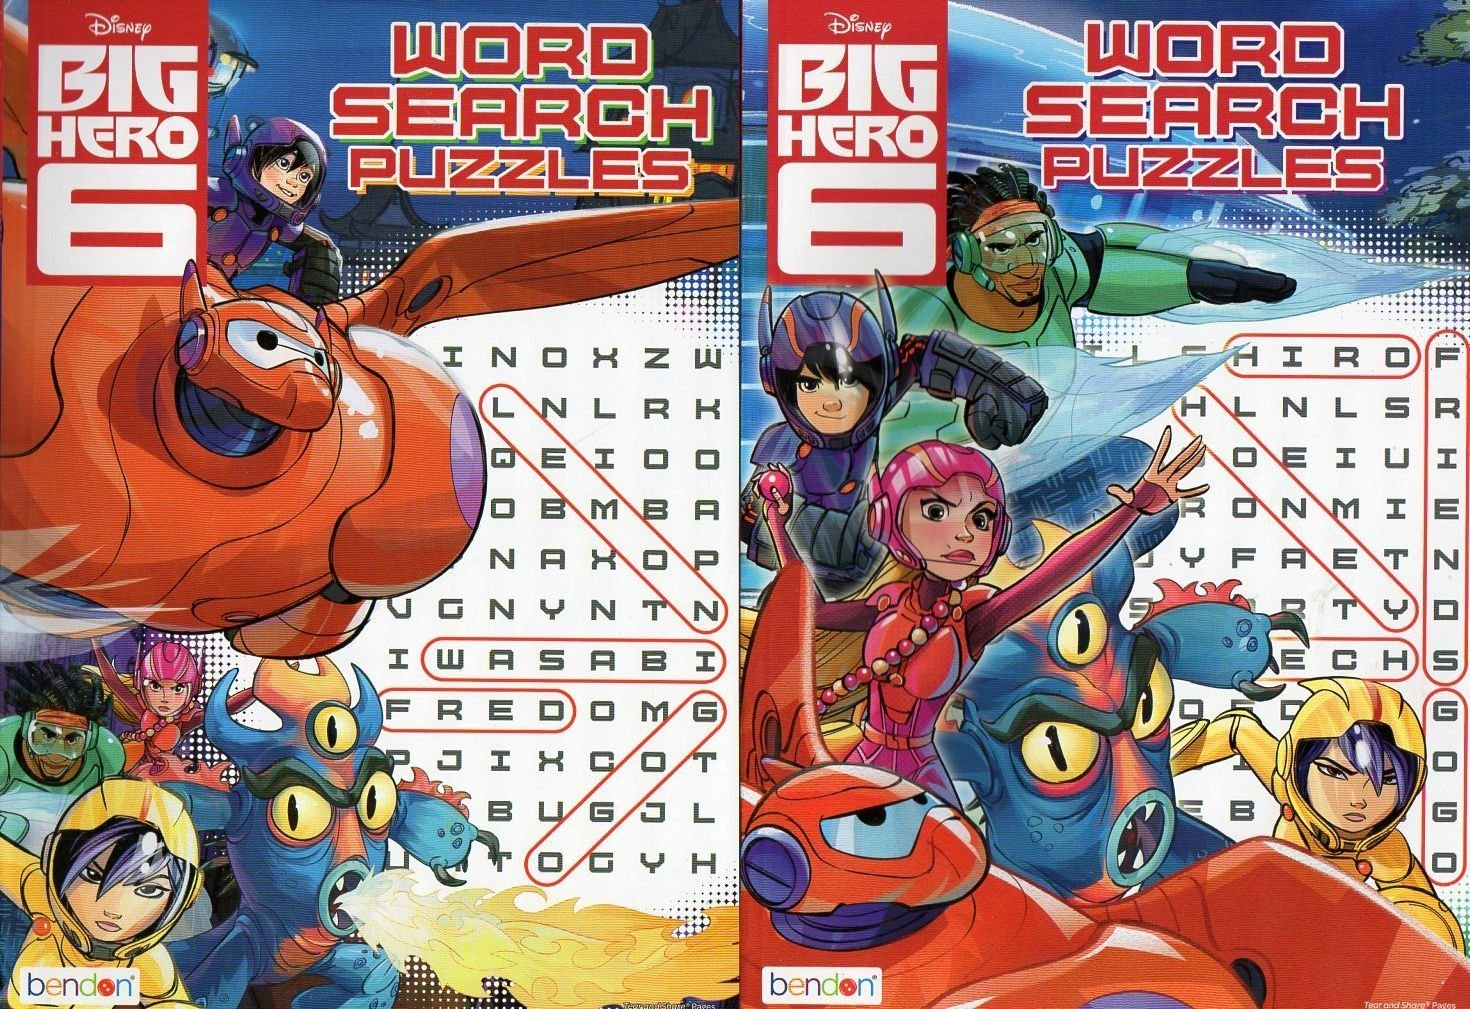 Set of 2 Books - Disney Big Hero 6 Word Search Puzzles Books